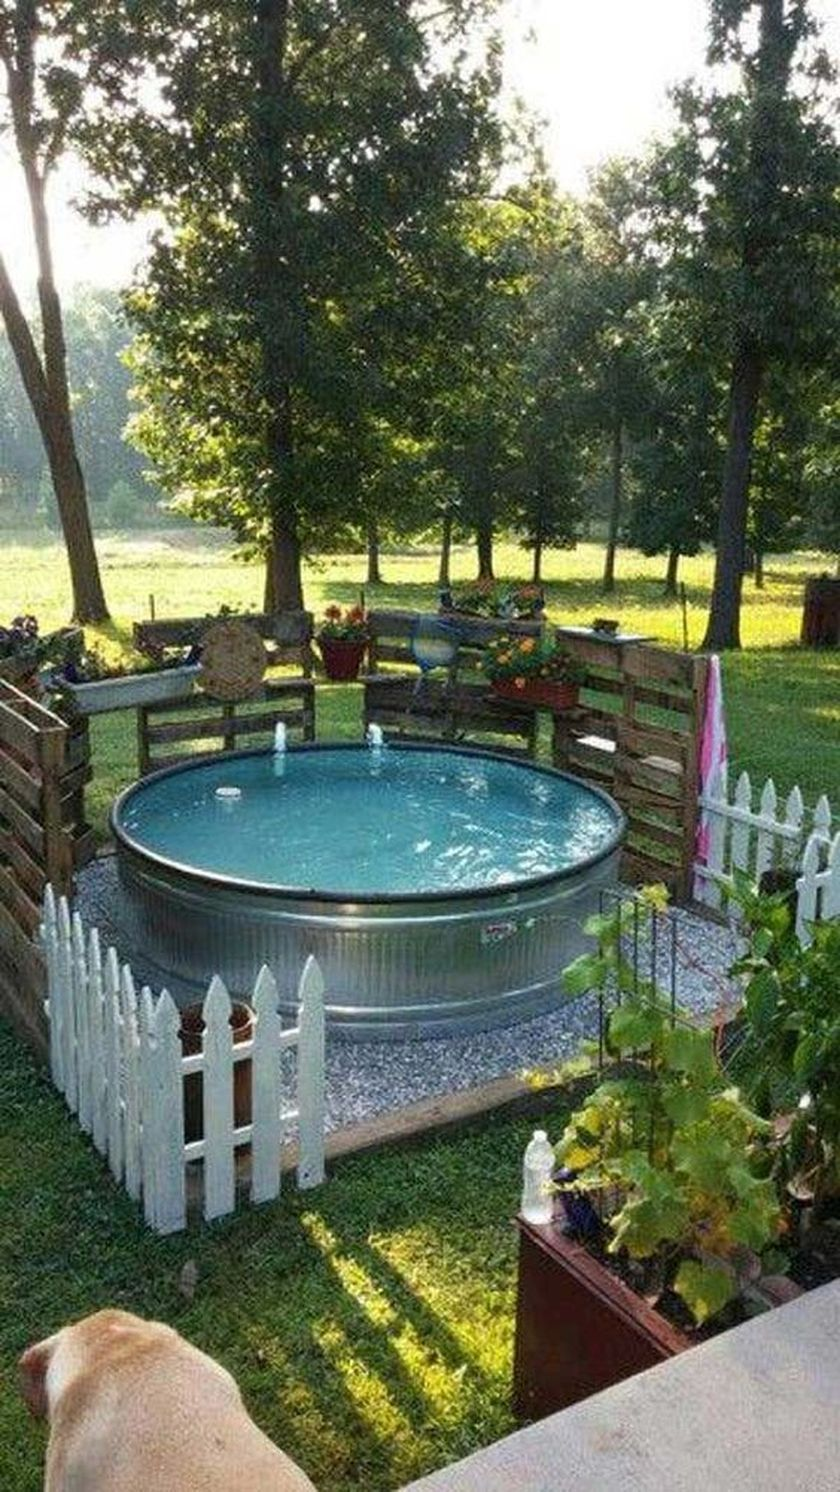 60 Fabulous Natural Small Pool Design Ideas to Copy on Your Backyard ...